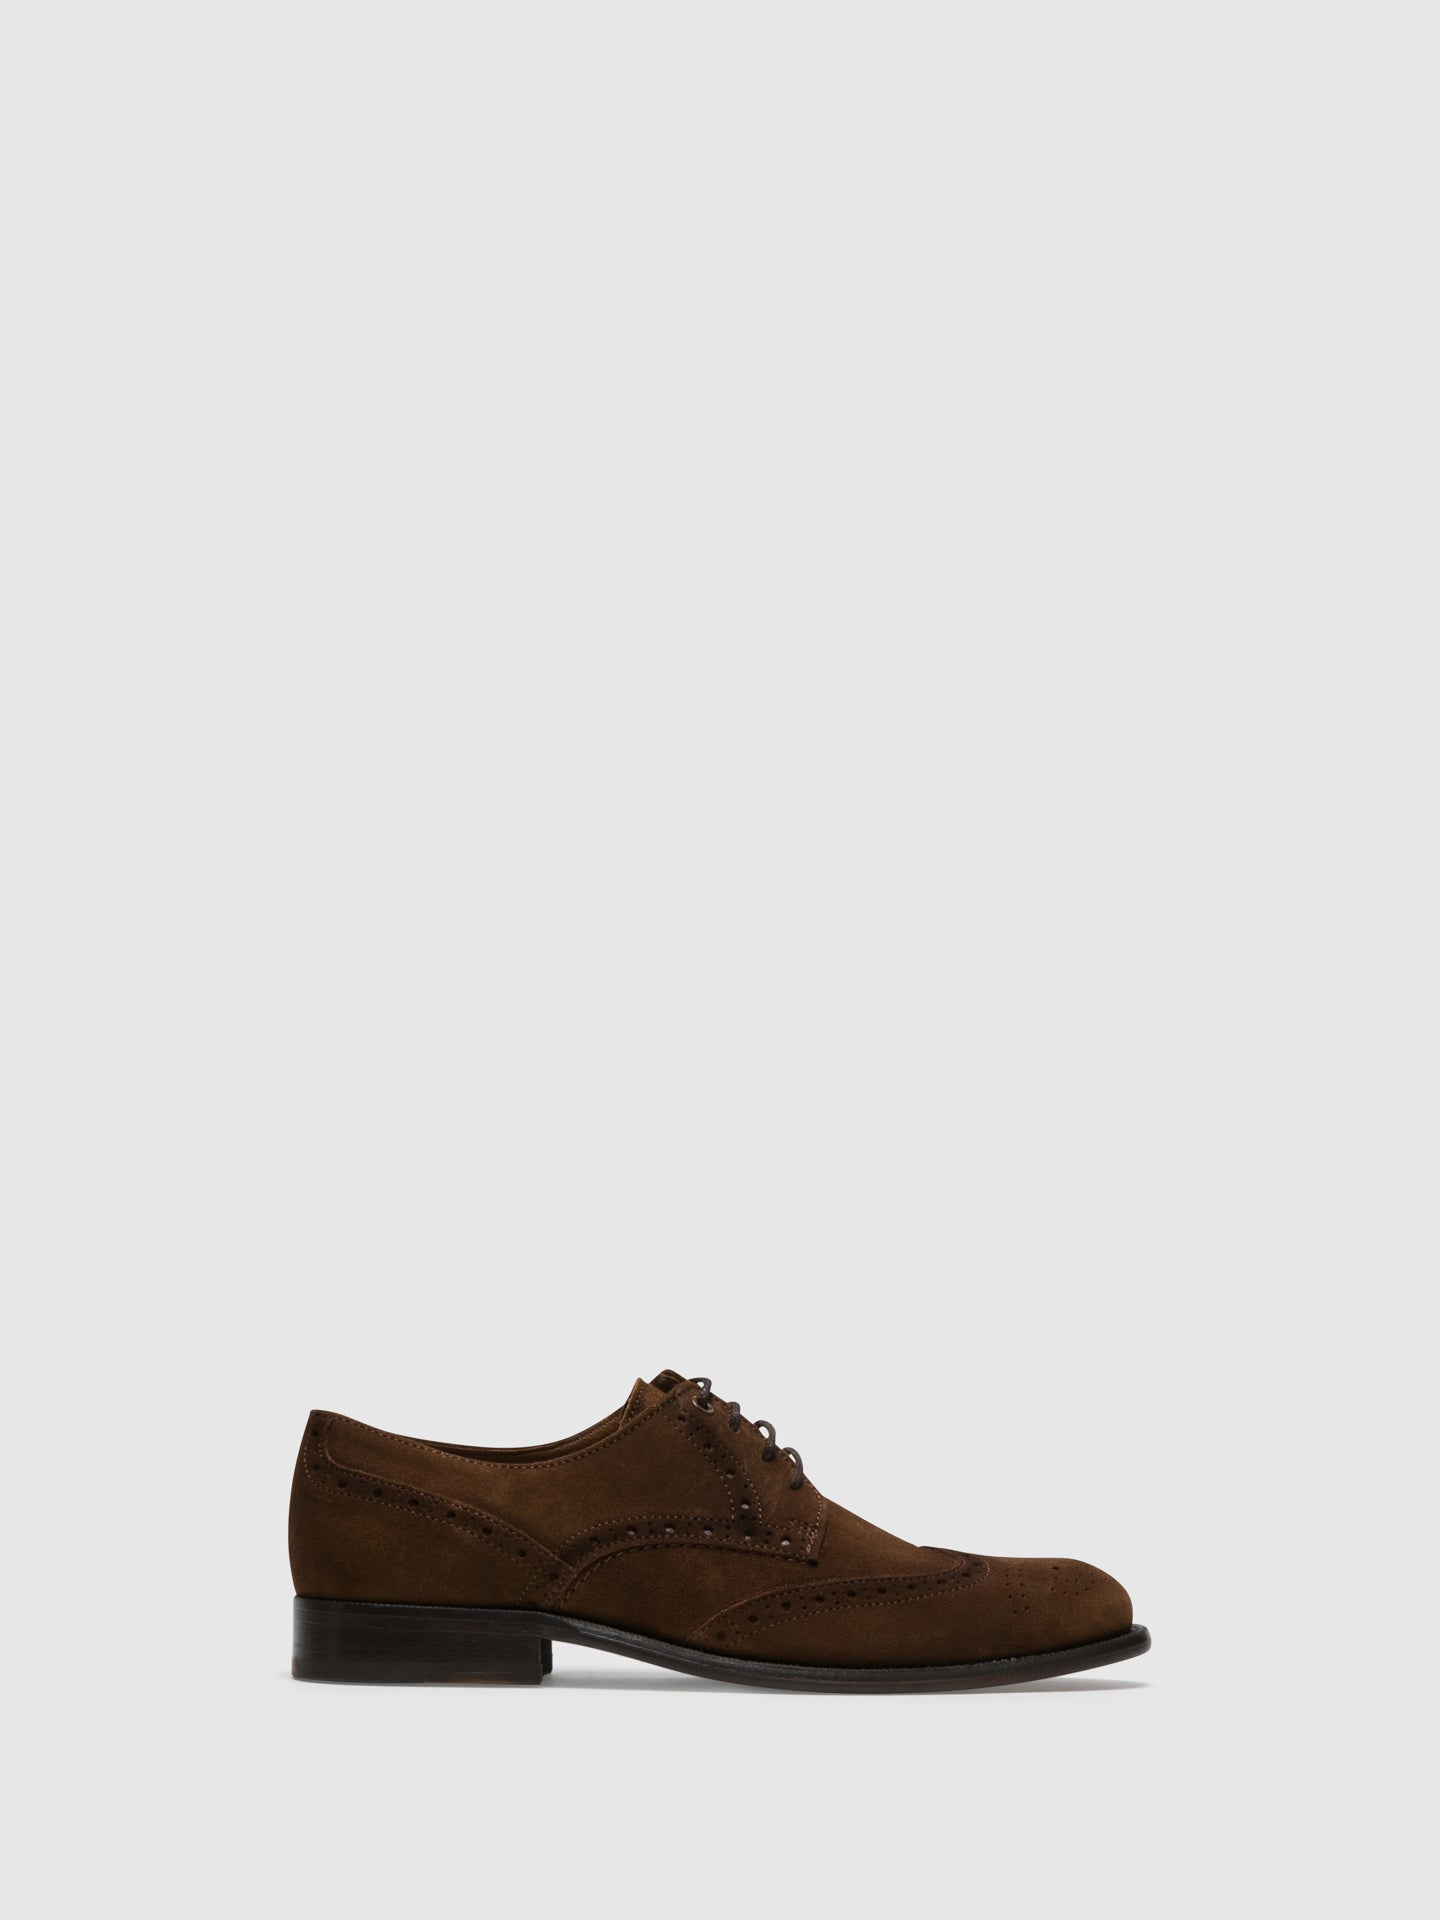 Foreva Camel Suede Oxford